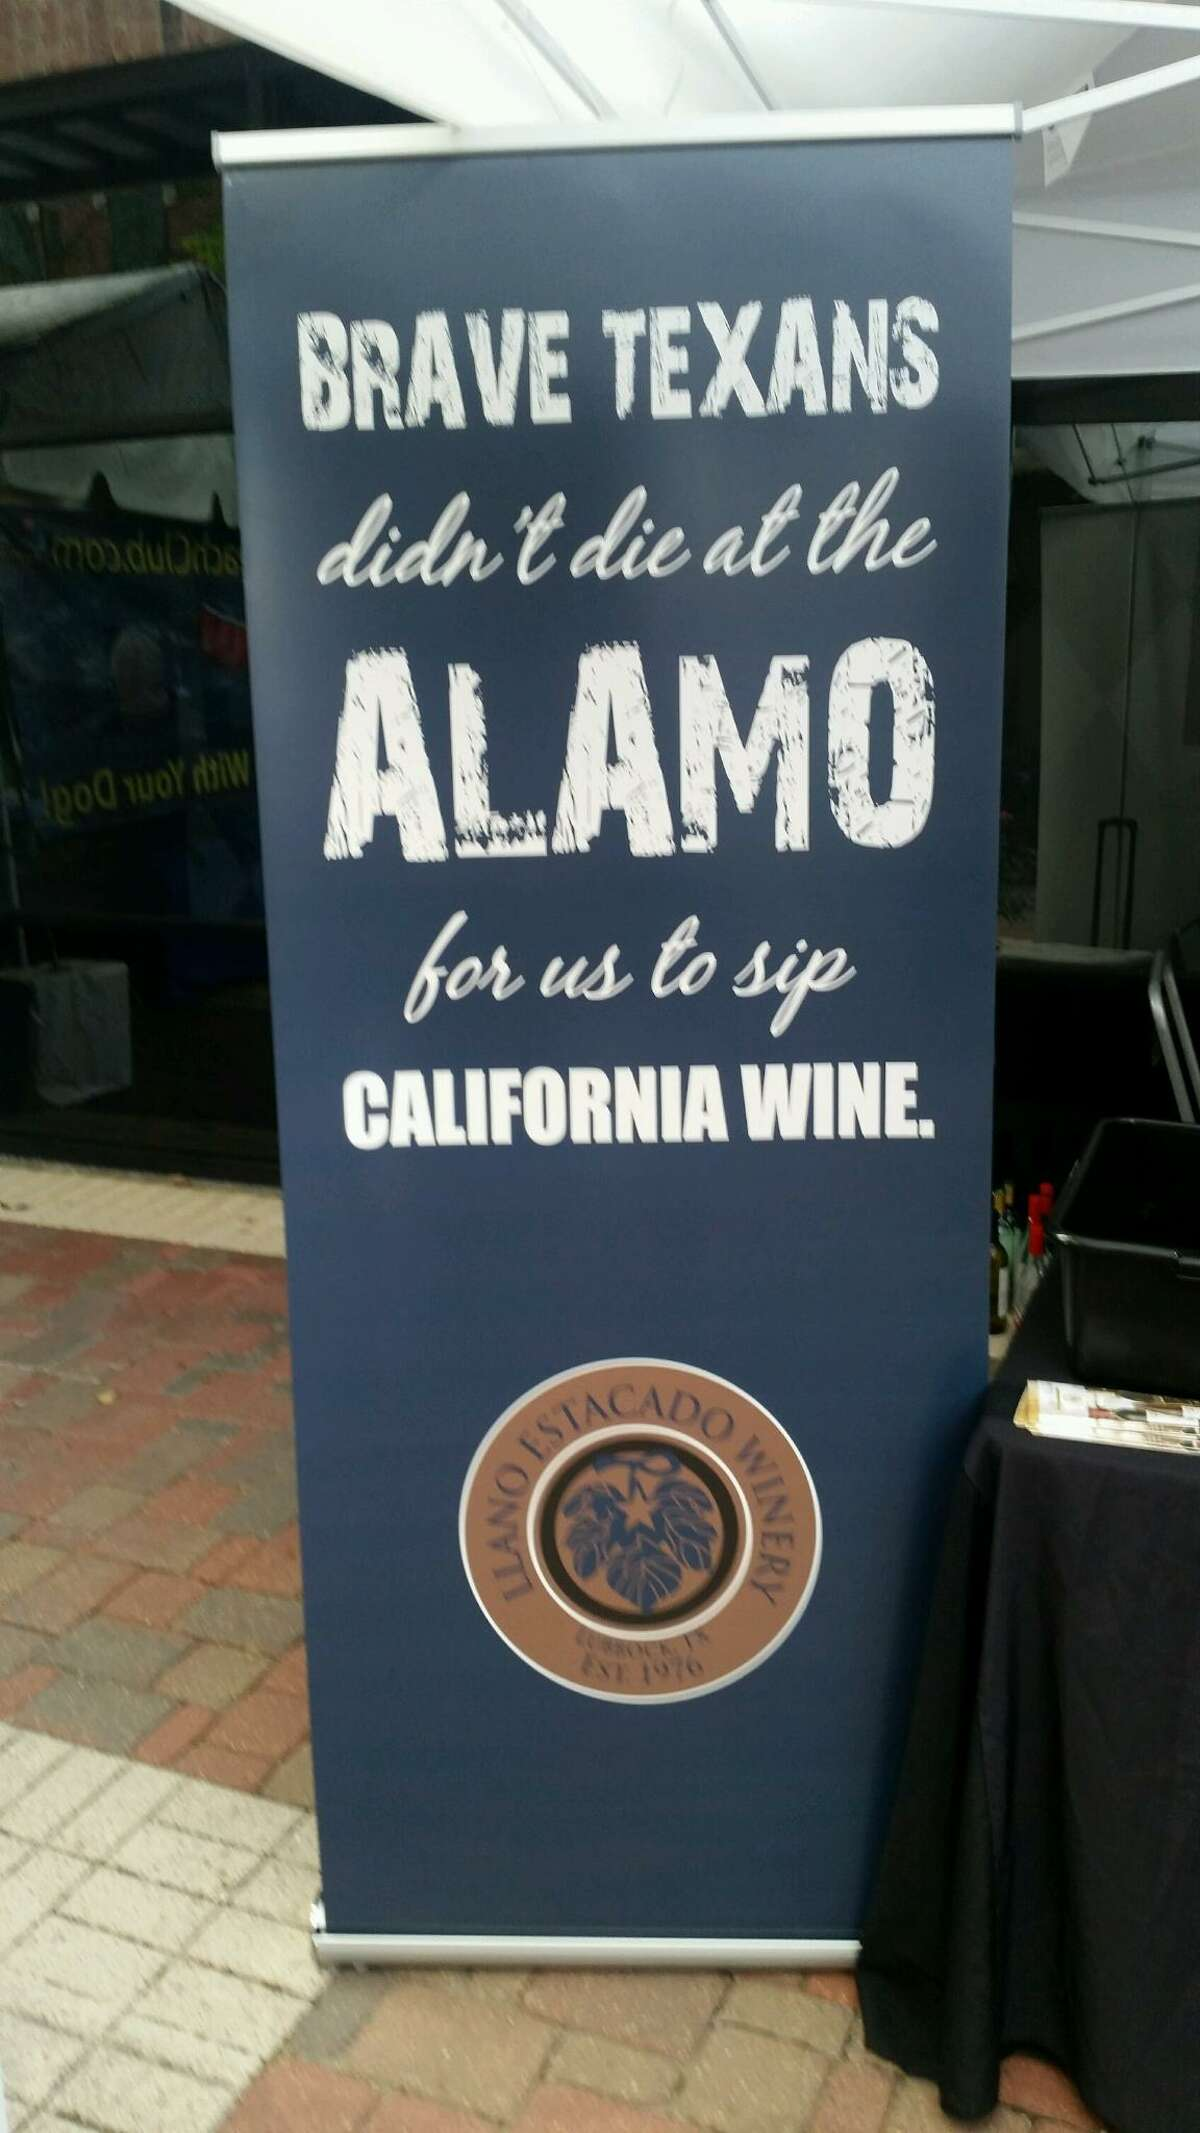 Raise a glass of Texas Wine TODAY to commemorate those brave Texans at the Alamo who died on March 6, 1836!